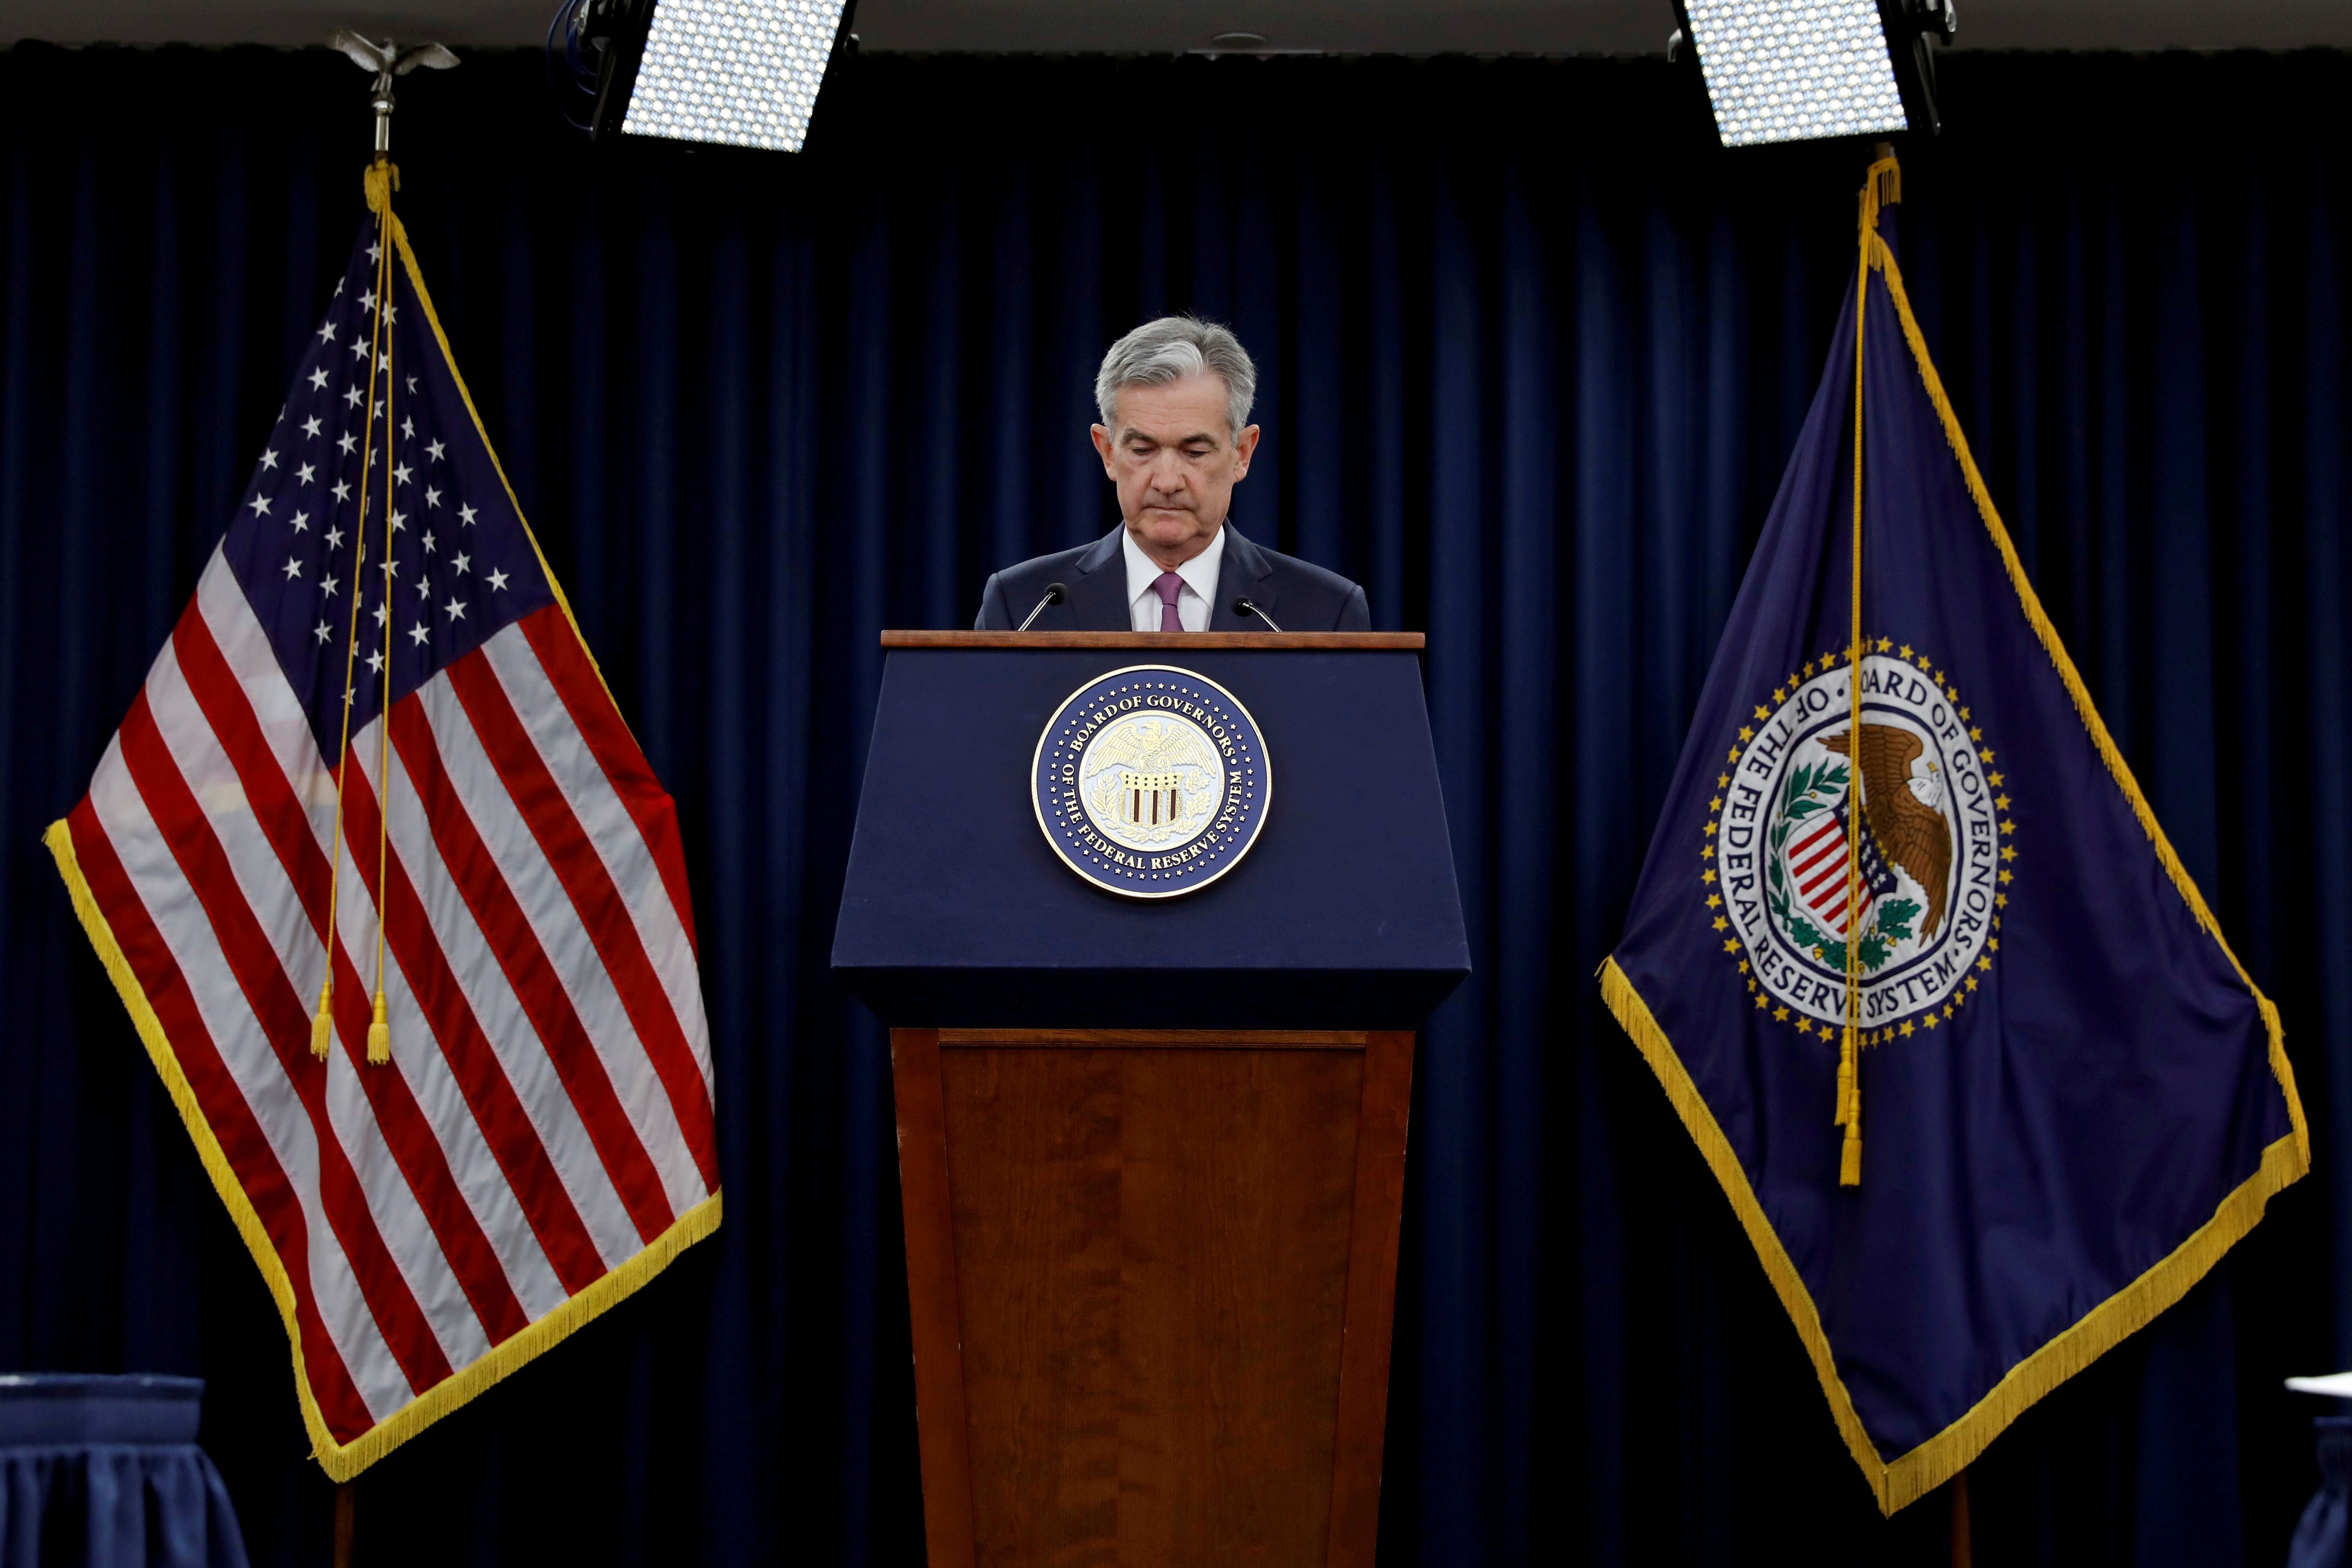 FILE PHOTO: Federal Reserve Board Chairman Jerome Powell speaks at his news conference after the two-day meeting of the Federal Open Market Committee (FOMC) on interest rate policy in Washington, U.S., June 13, 2018. REUTERS/Yuri Gripas/File Photo/File Photo/File Photo